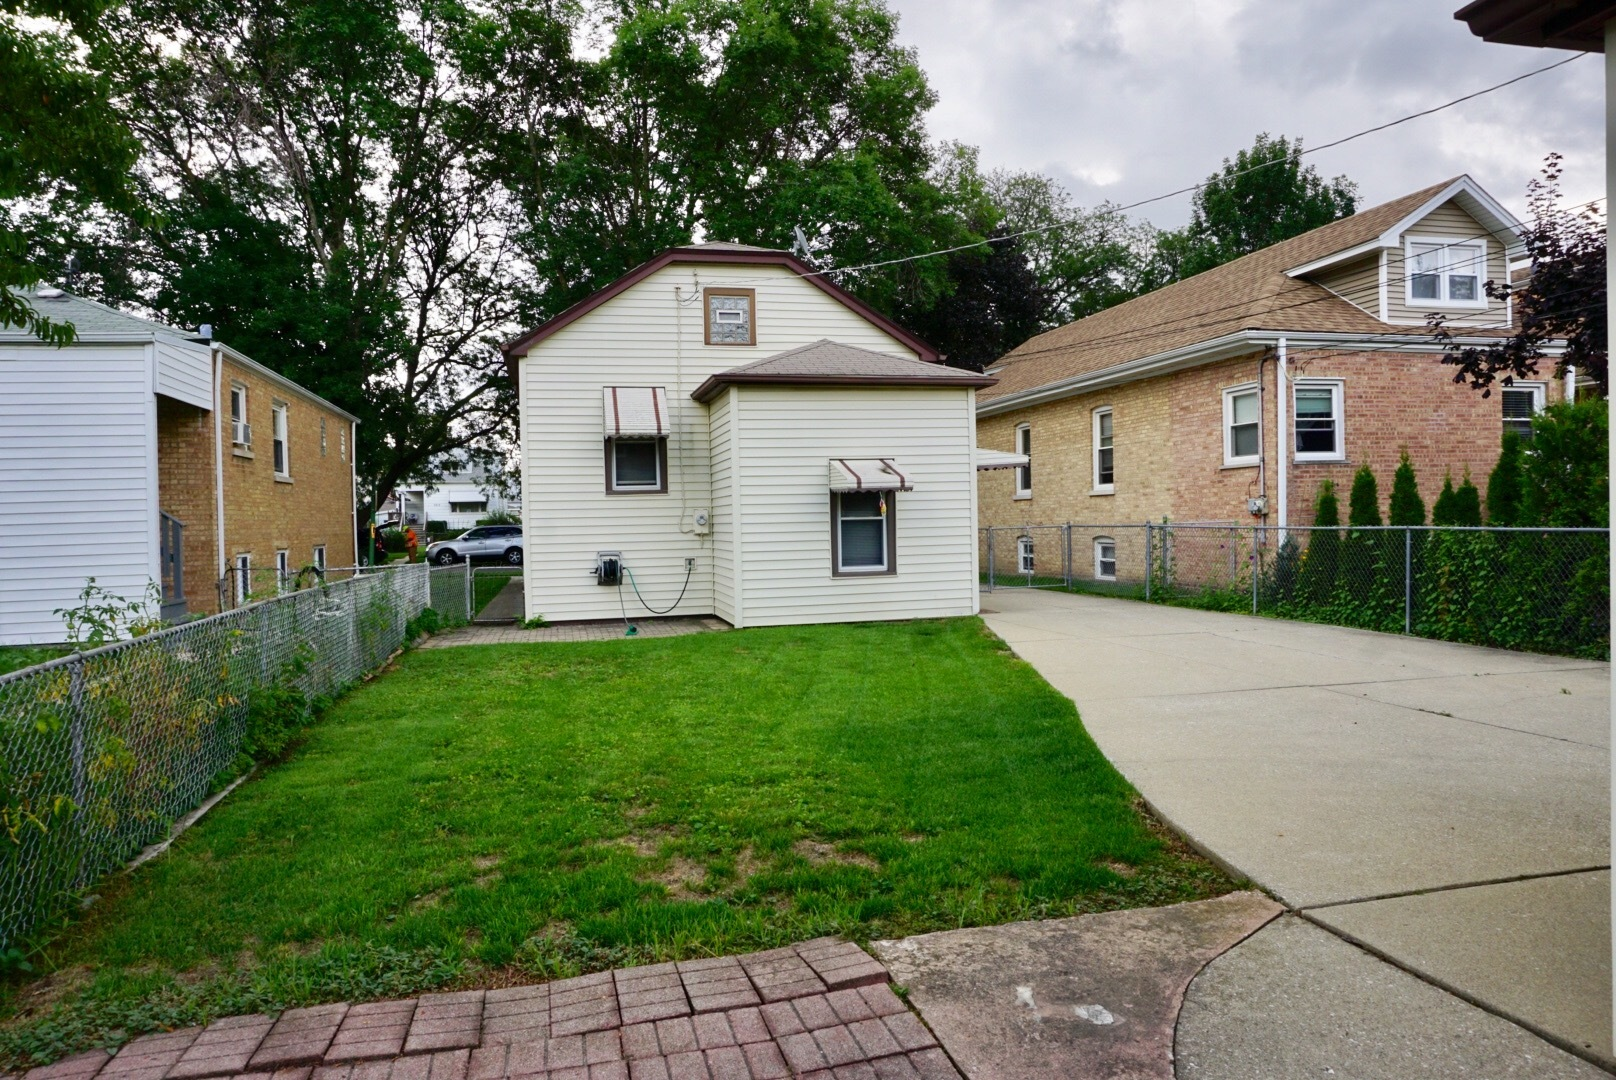 3812 N Nora AVE, Chicago, IL, 60634, single family homes for sale